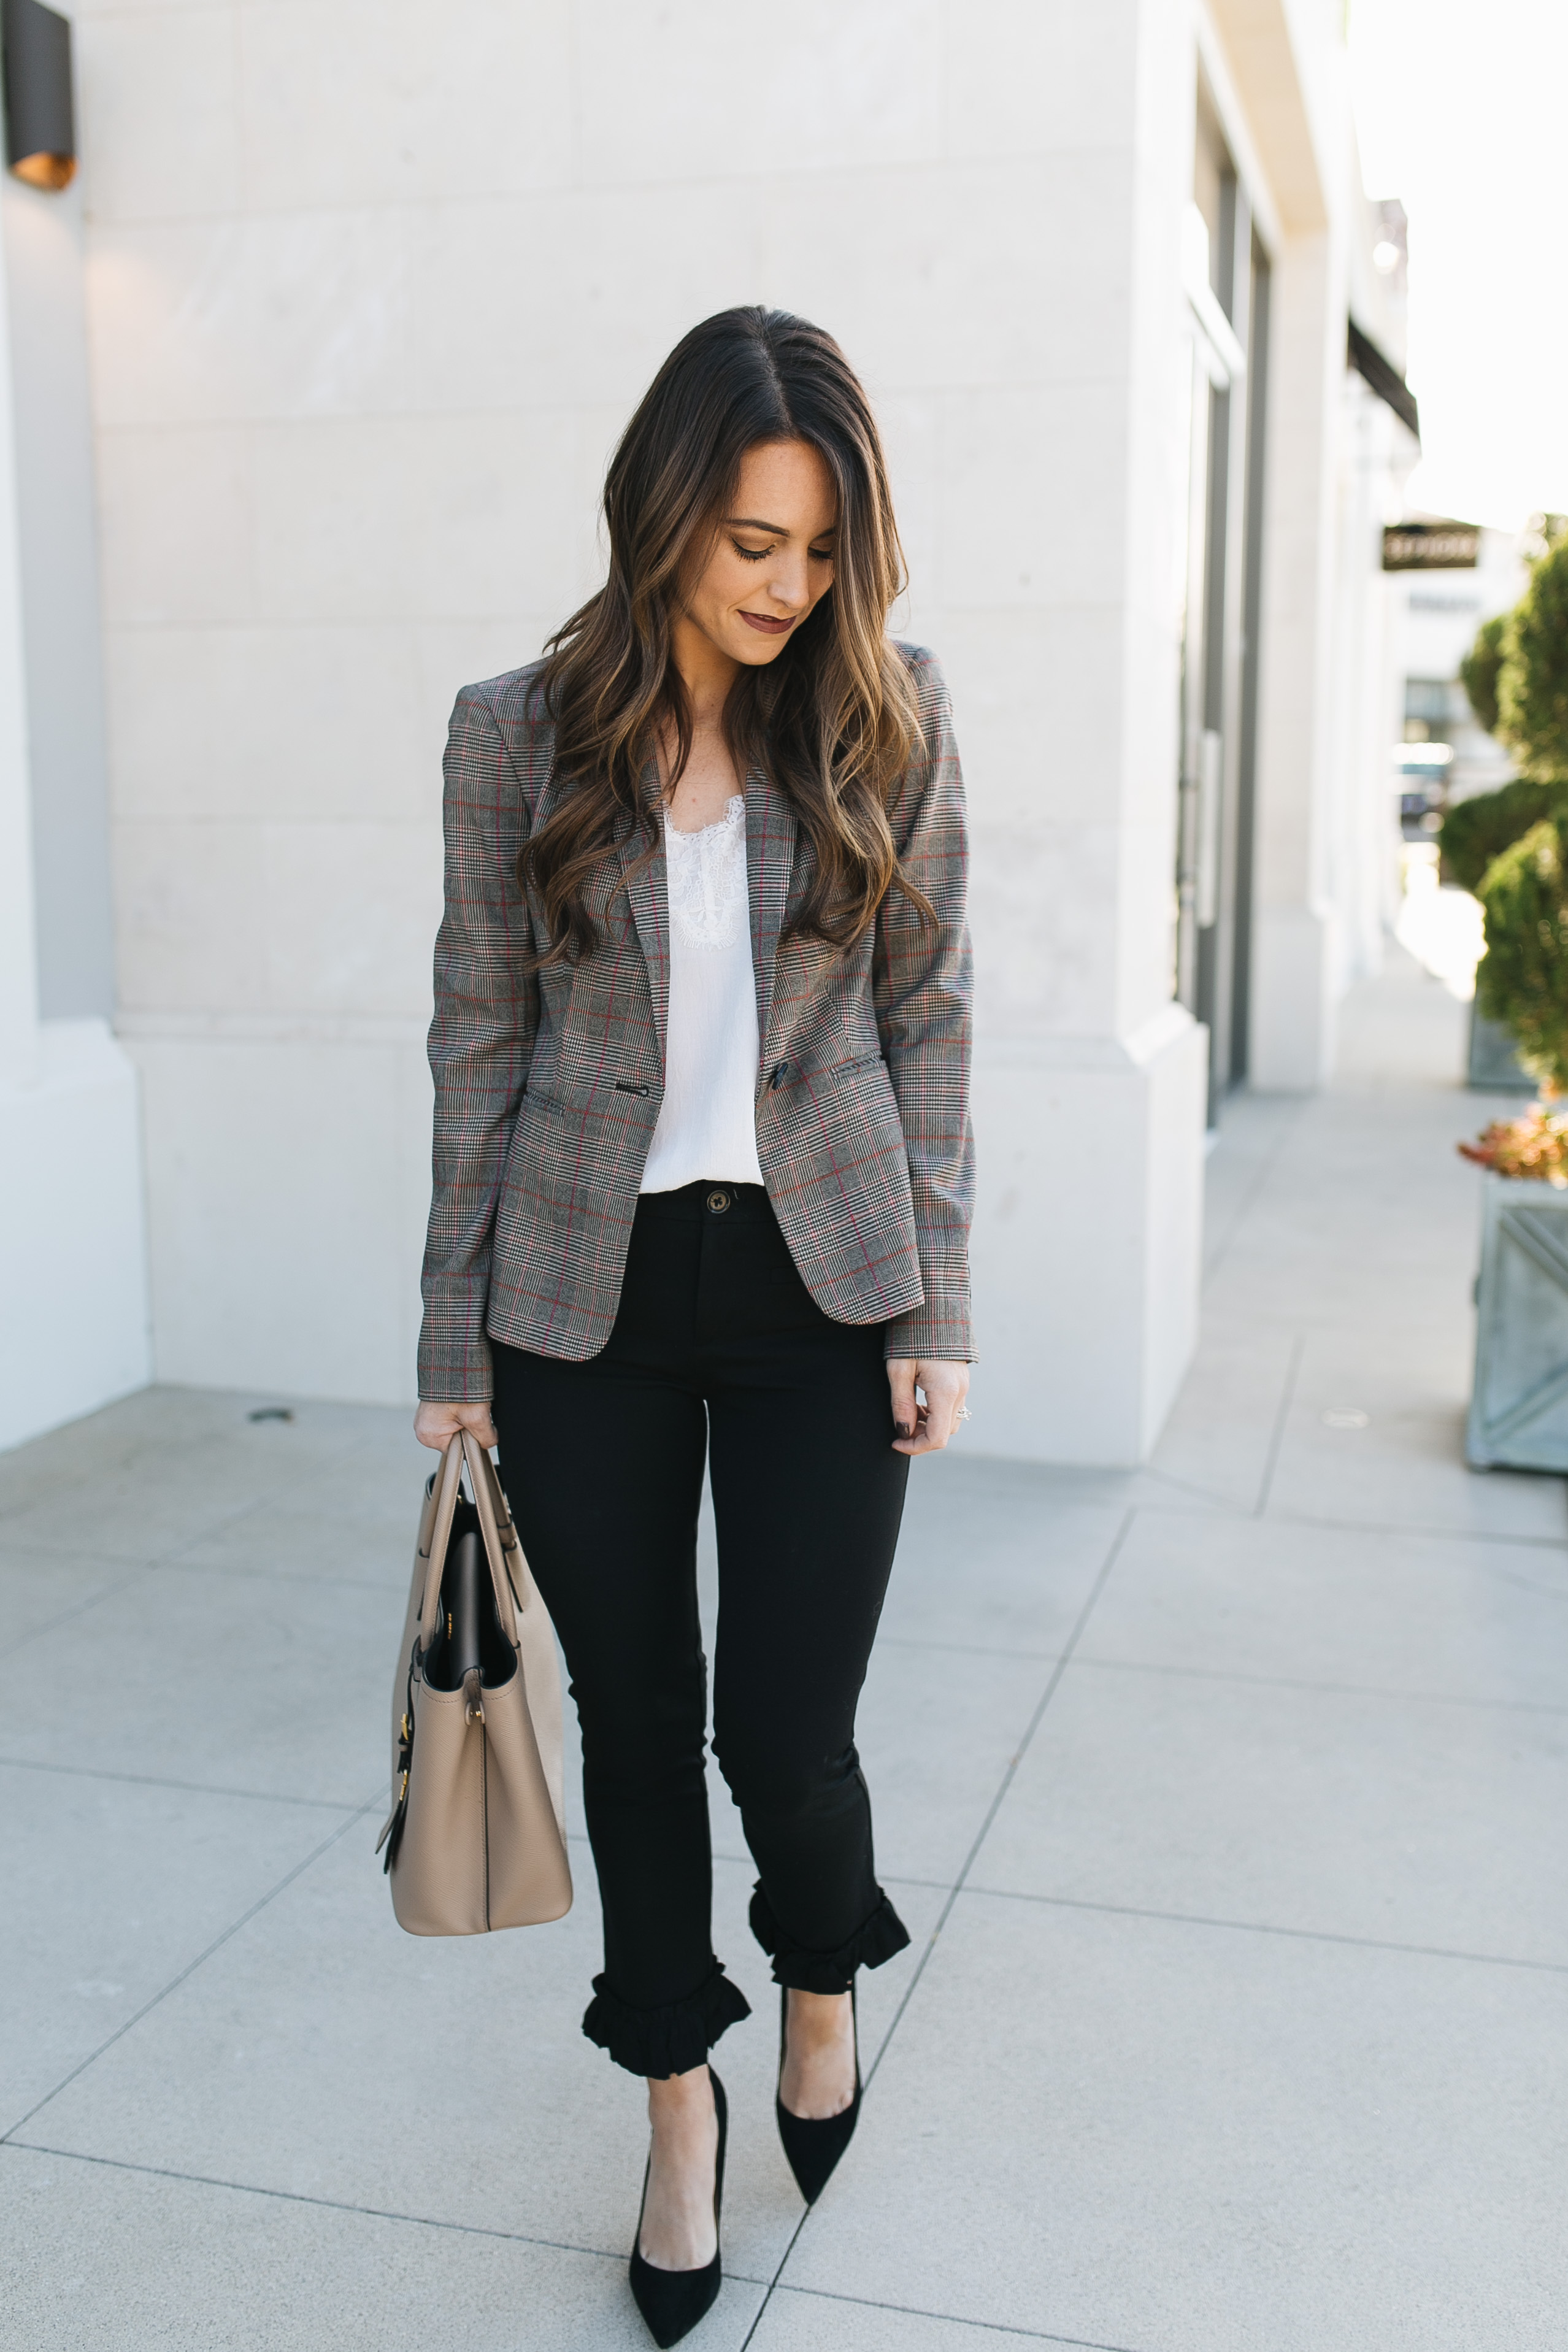 Style blogger Daryl-Ann Denner styles a plaid blazer in a work-appropriate and on-trend outfit